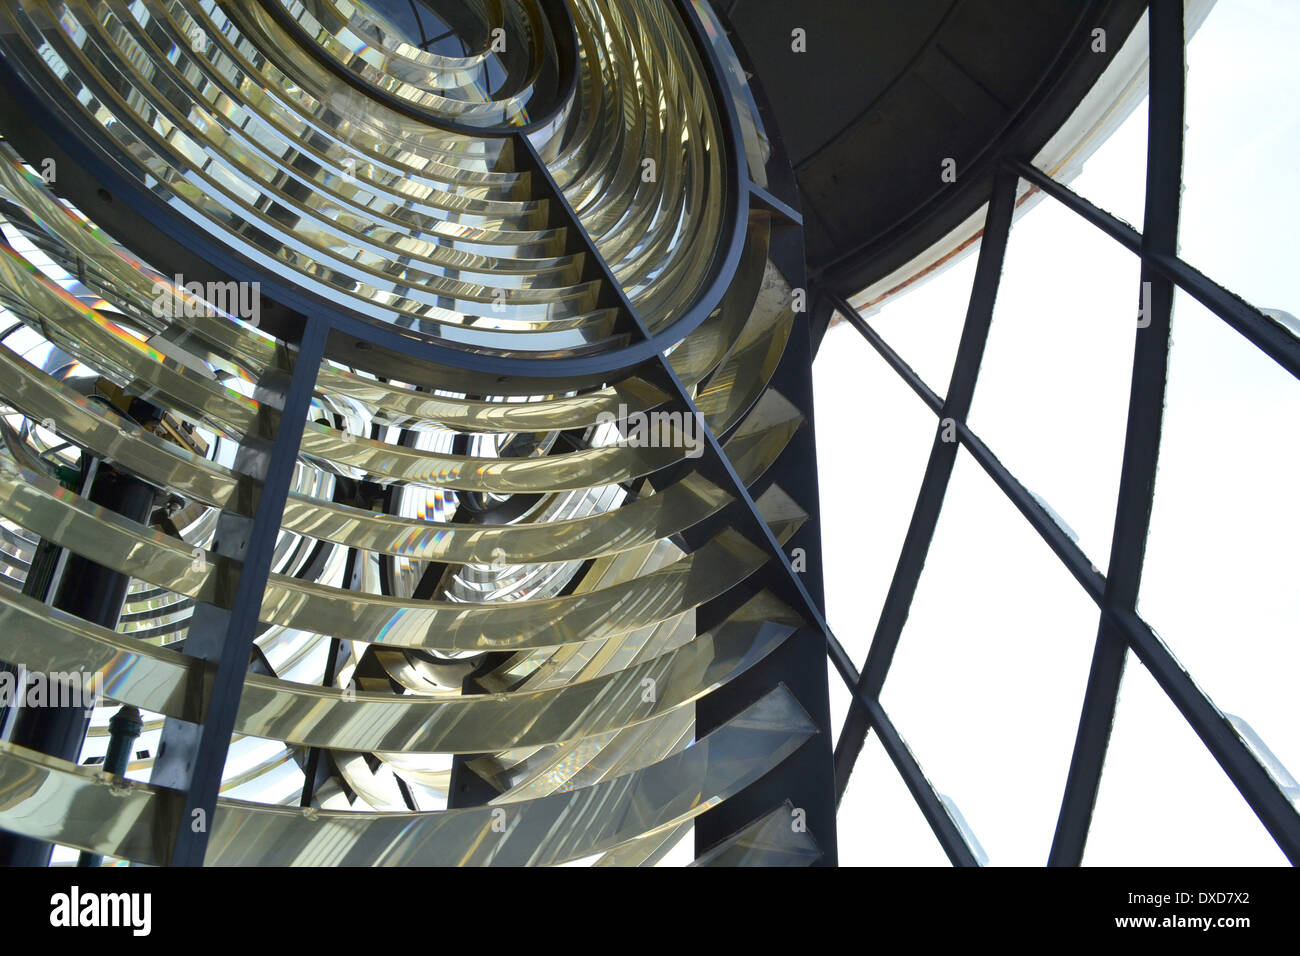 Fresnel lens on the lamp at the Lizard Lighthouse, Cornwall, England. Stock Photo